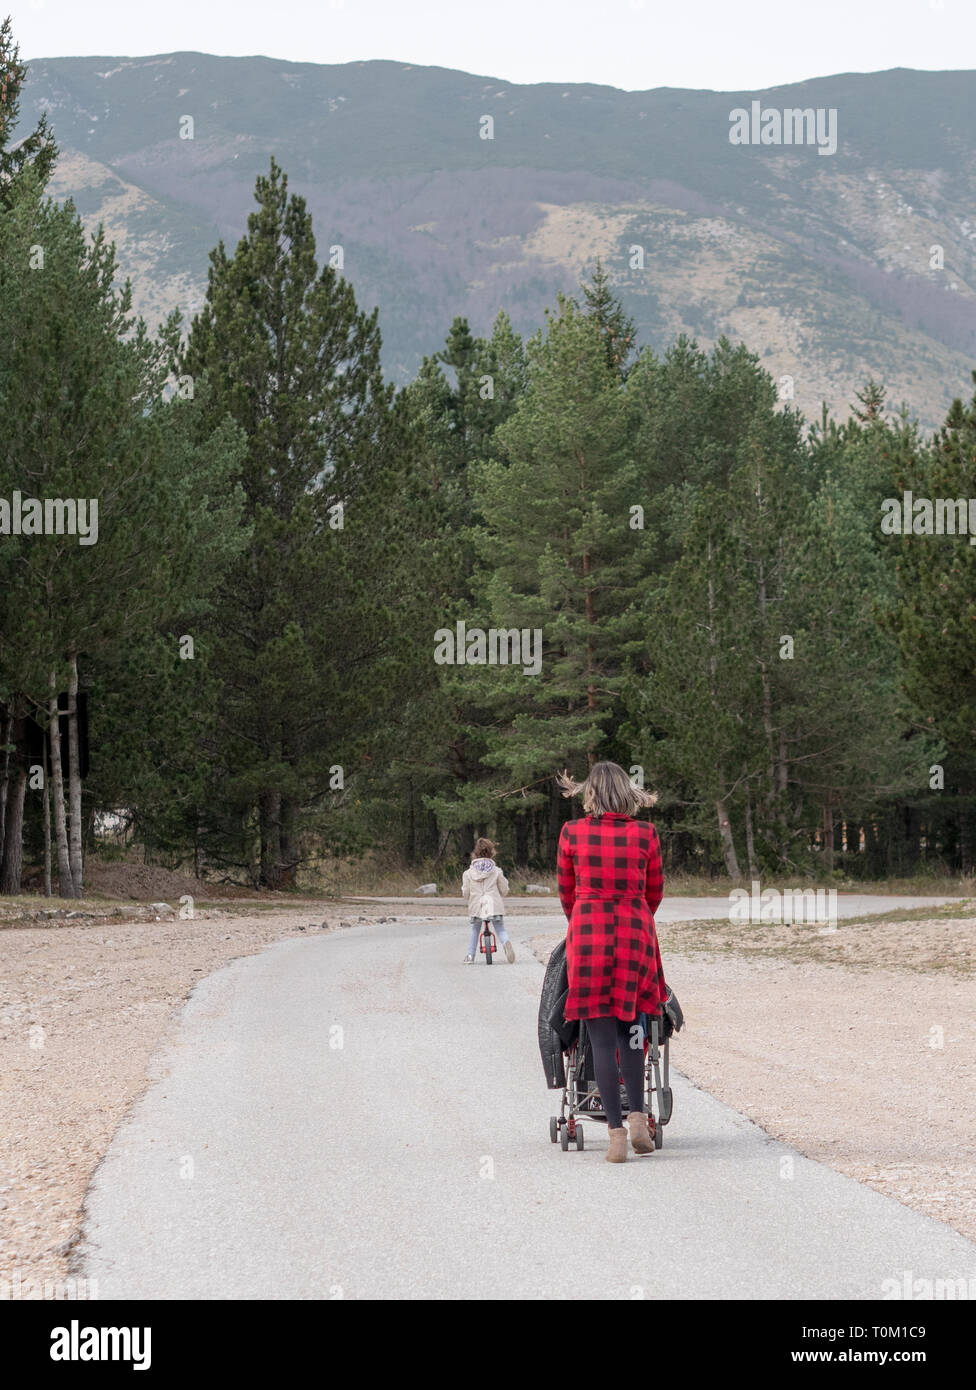 Mom walking with stroller and small kid on bicycle on mountain road from the back - Stock Image